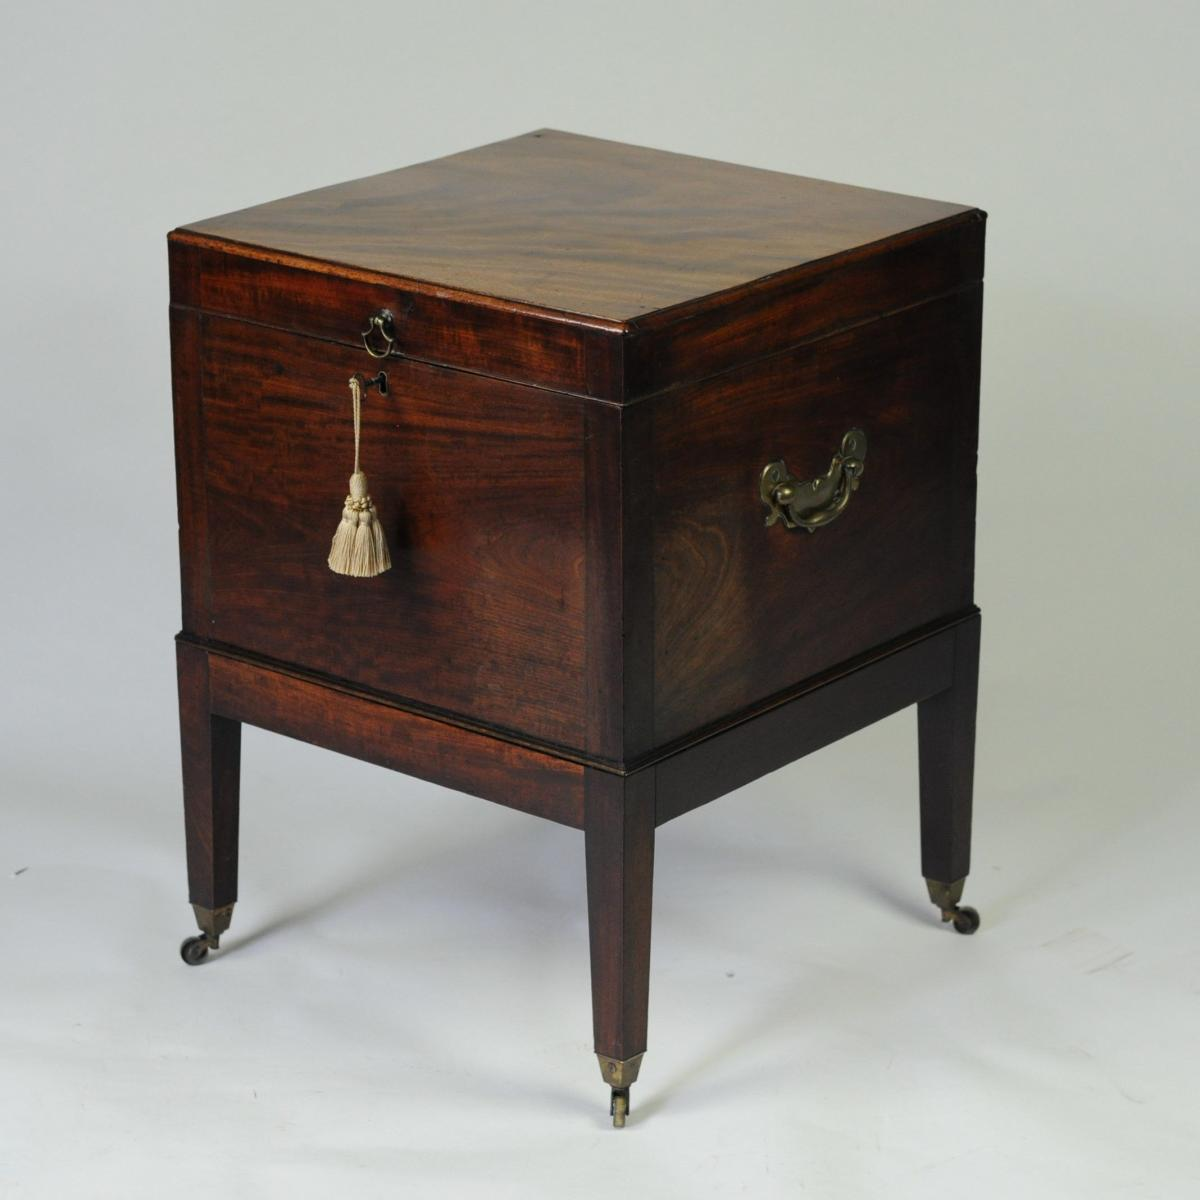 Georgian mahogany Box Cellarette